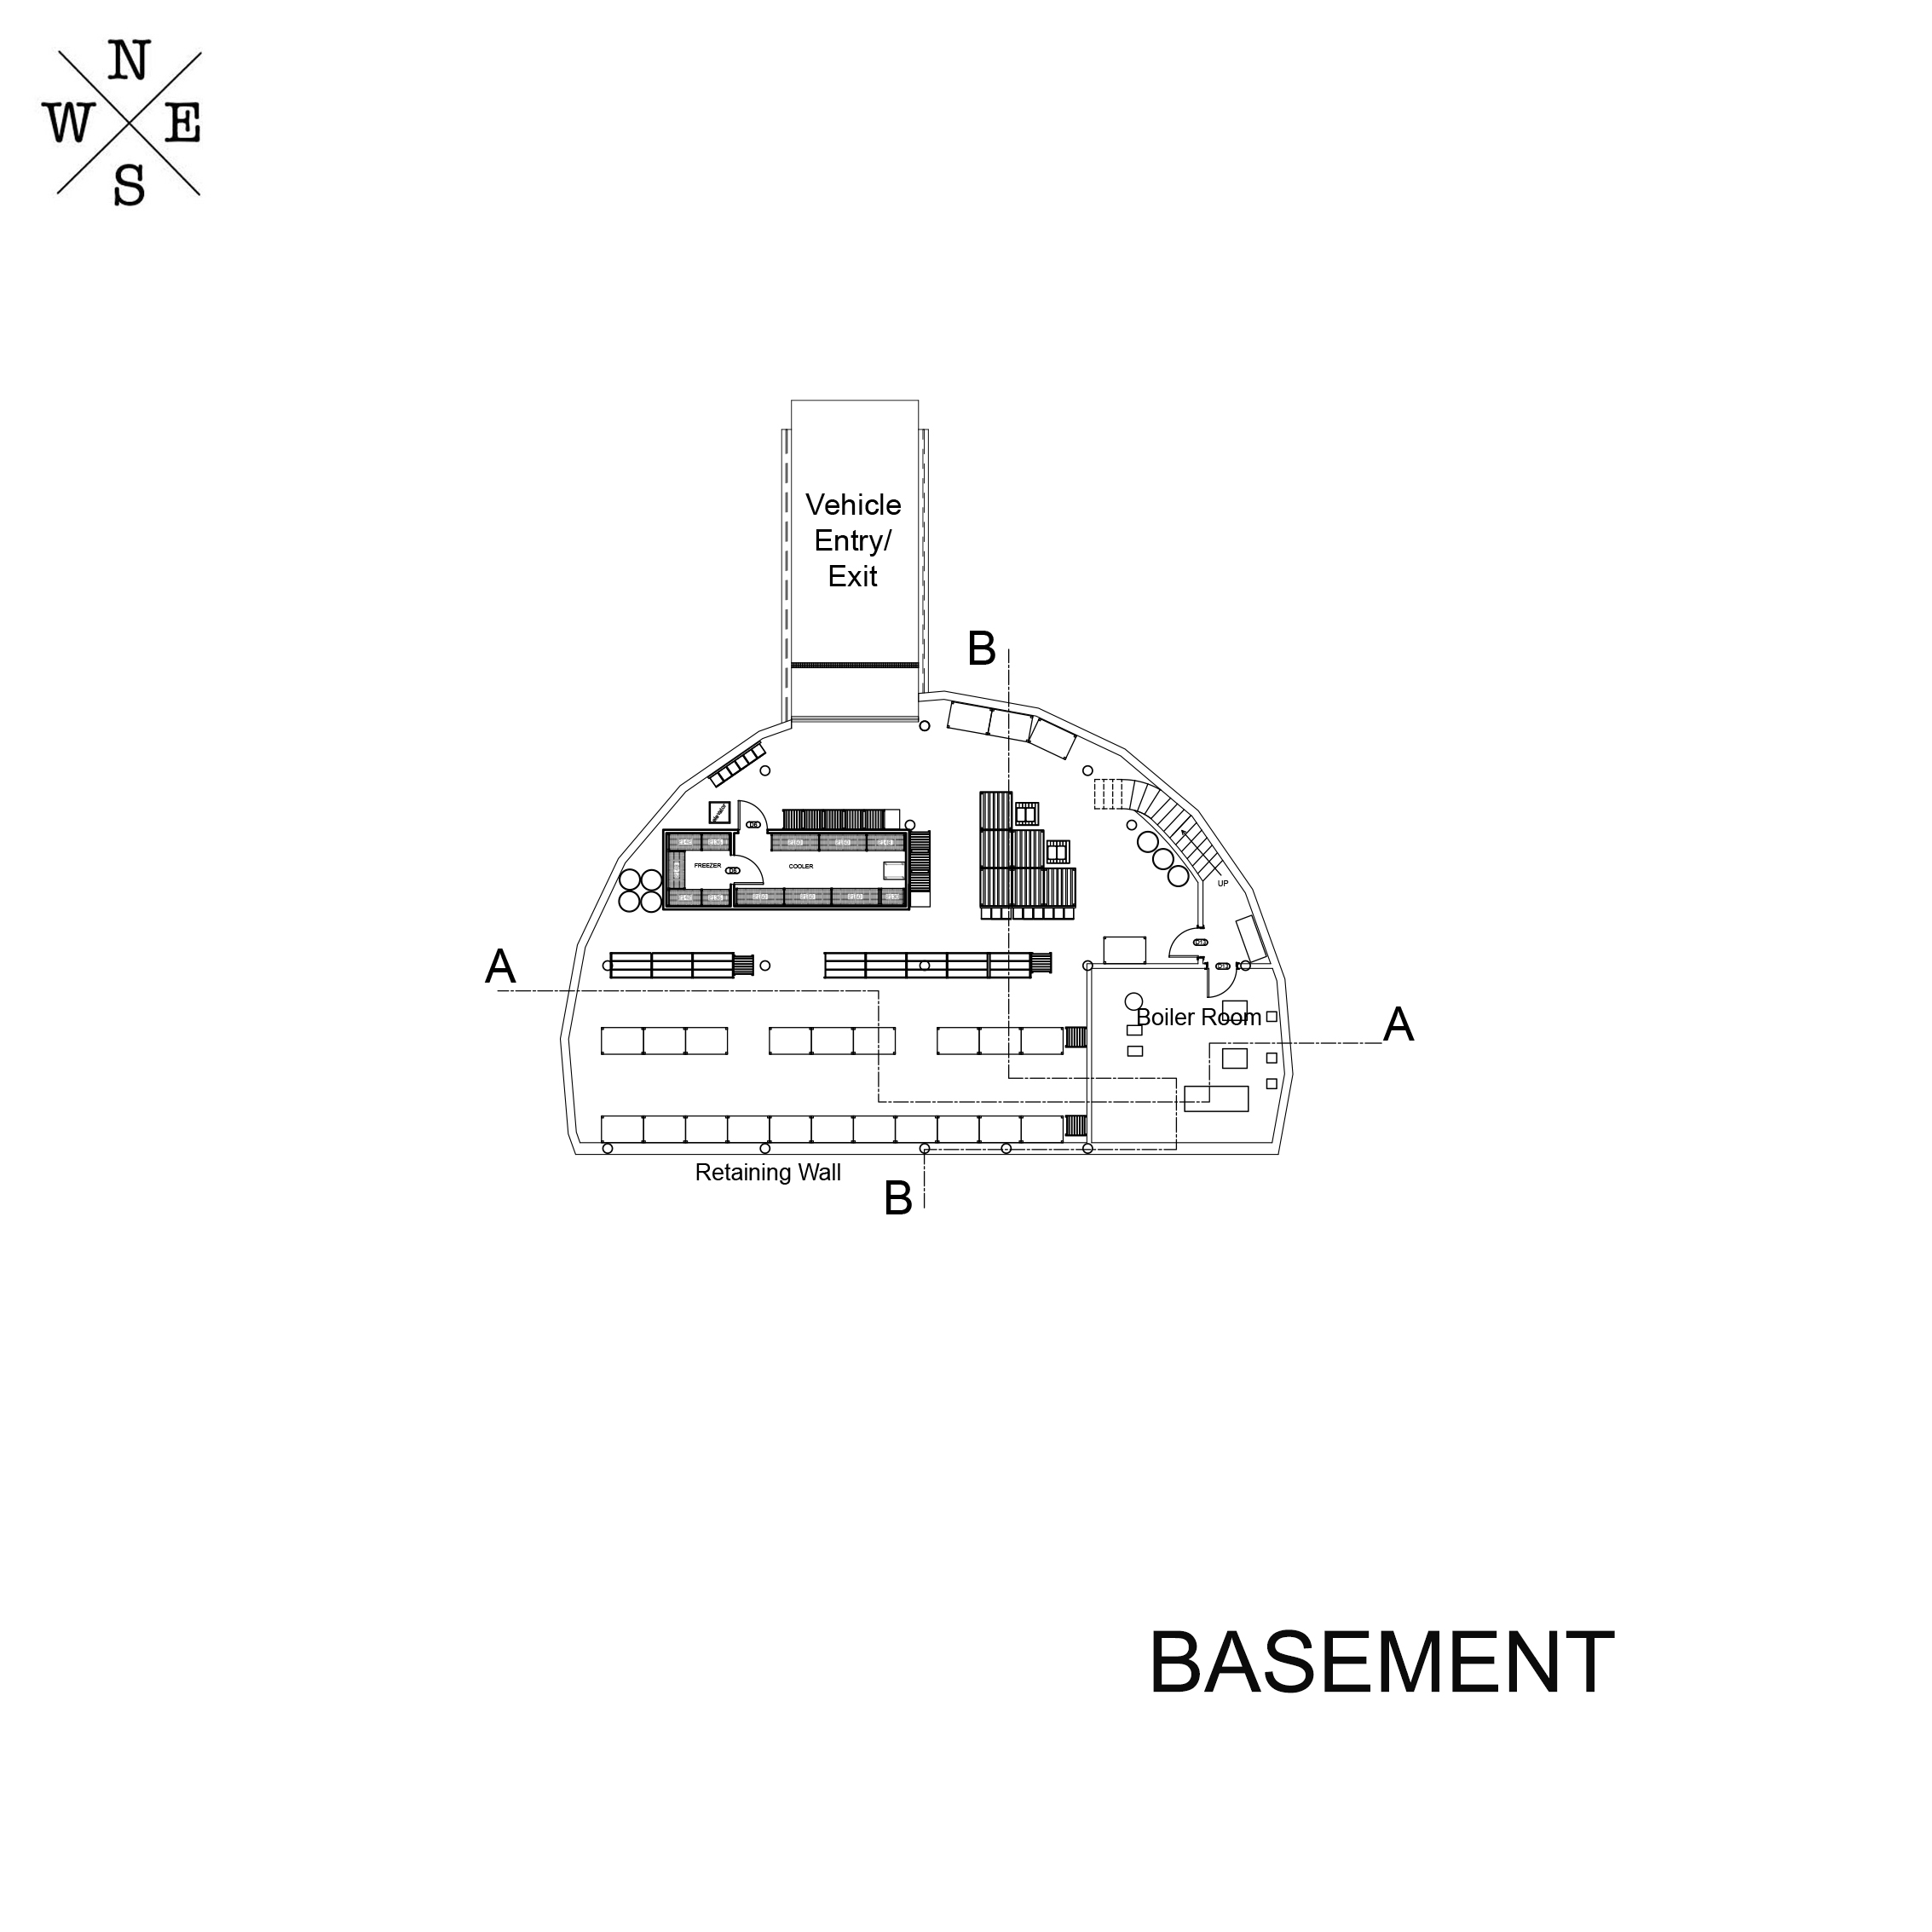 Dome Home Plans With Basements: Open Source LEED Platinum Eco